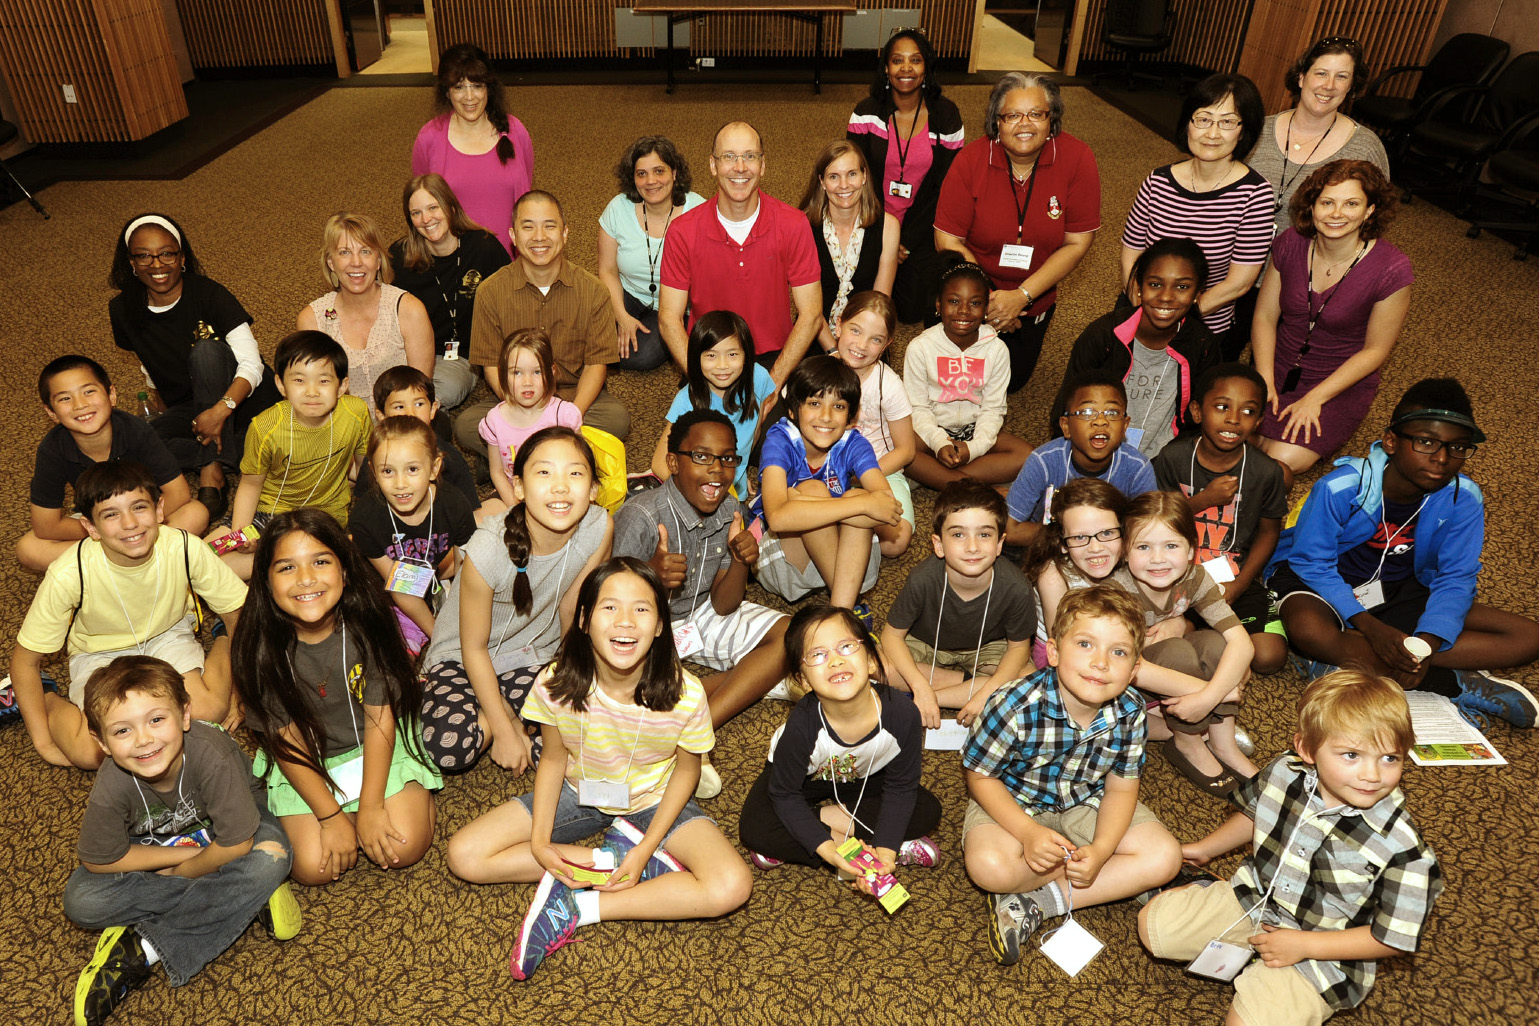 NIEHS staff and children enjoyed a wide variety of activities during Bring Your Kids to Work Day.